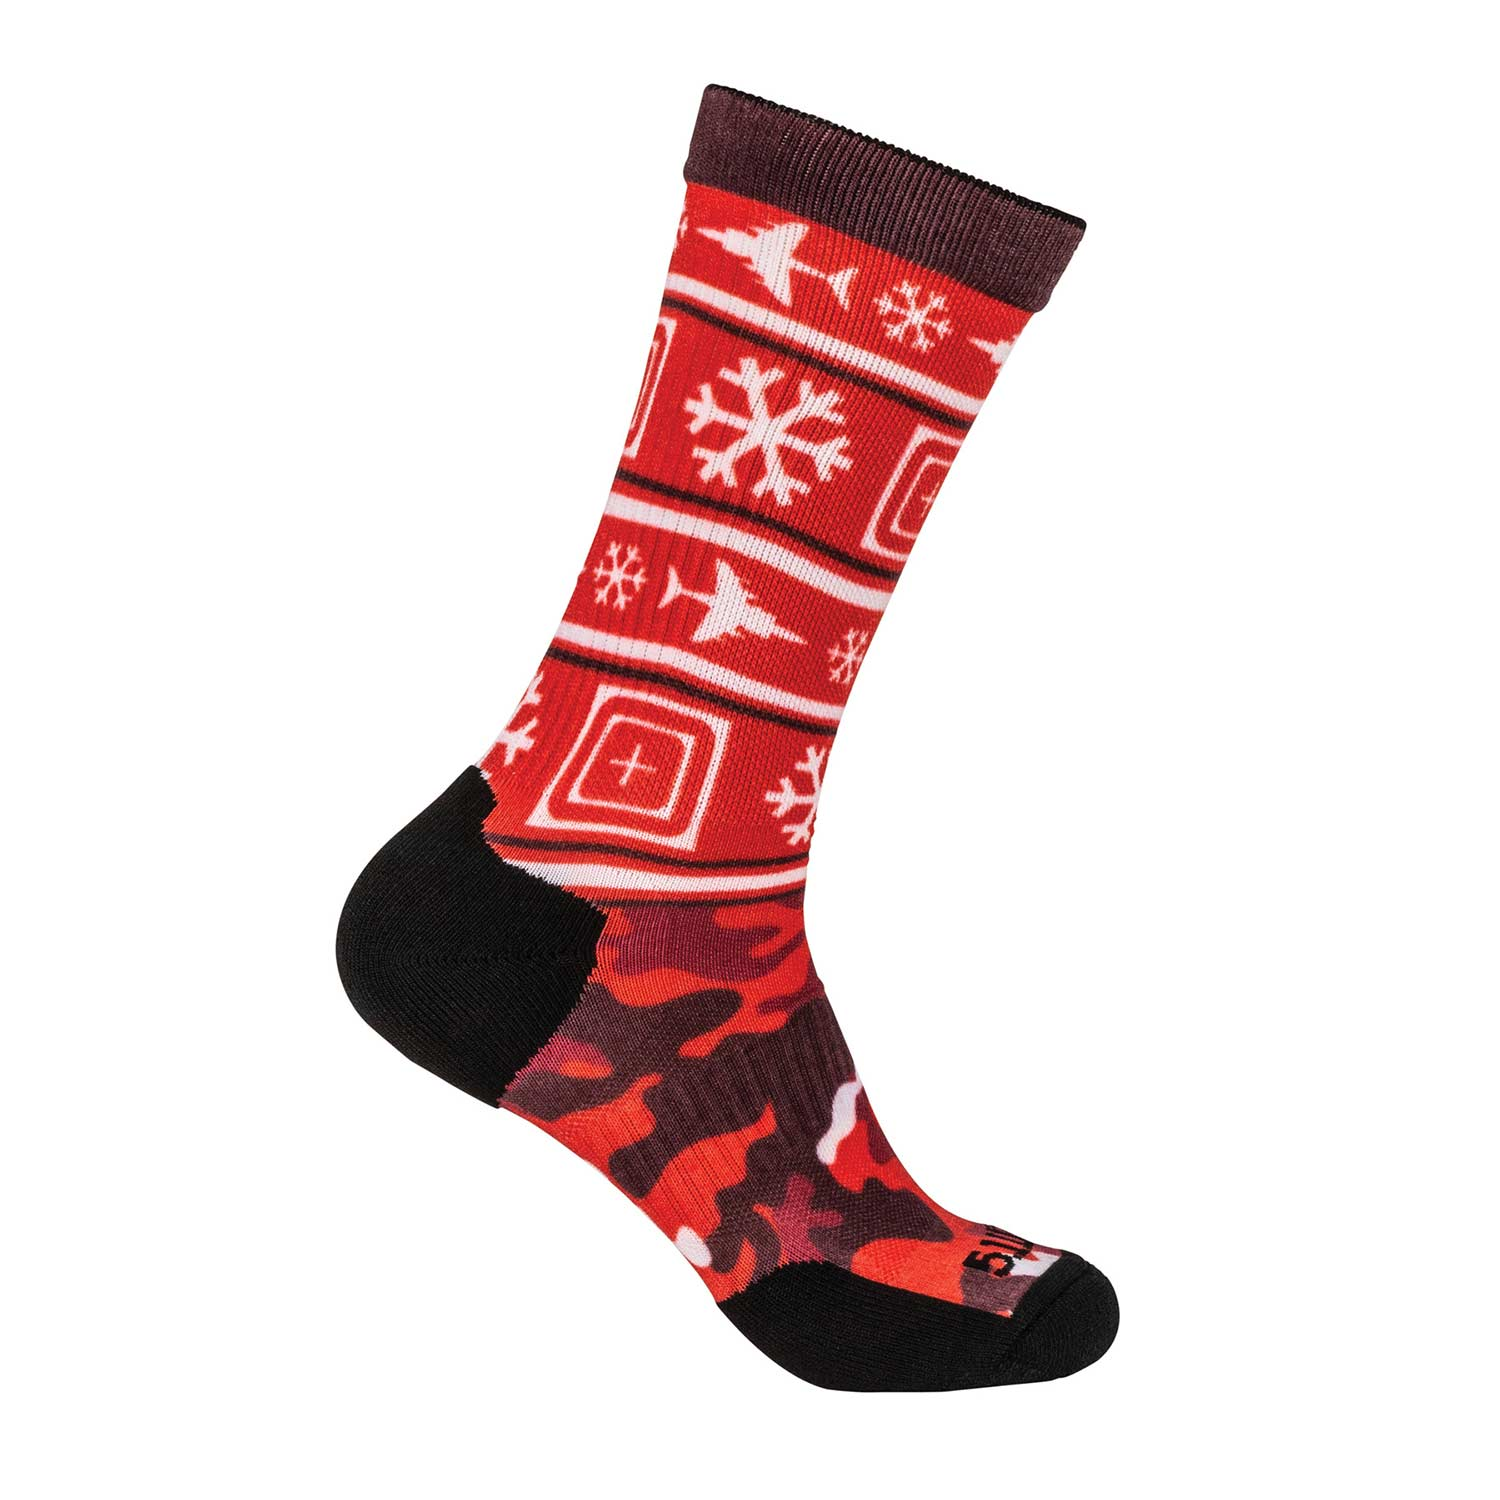 5.11 Tactical Socks and Awe Tactical Holiday Crew Socks